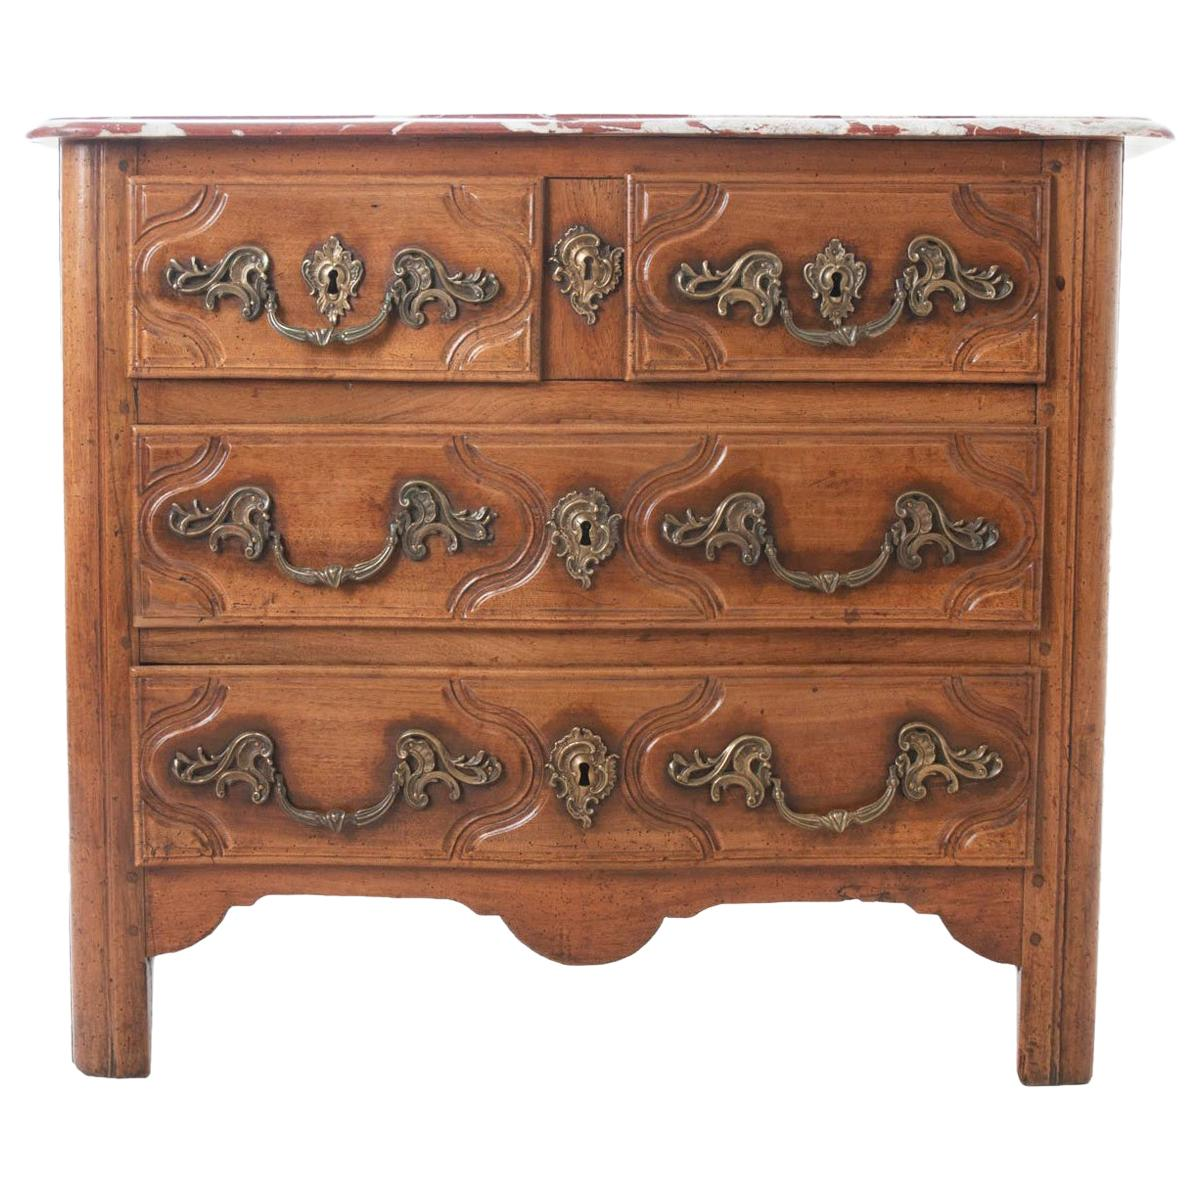 French Parisian 18th Century Marble-Top Commode